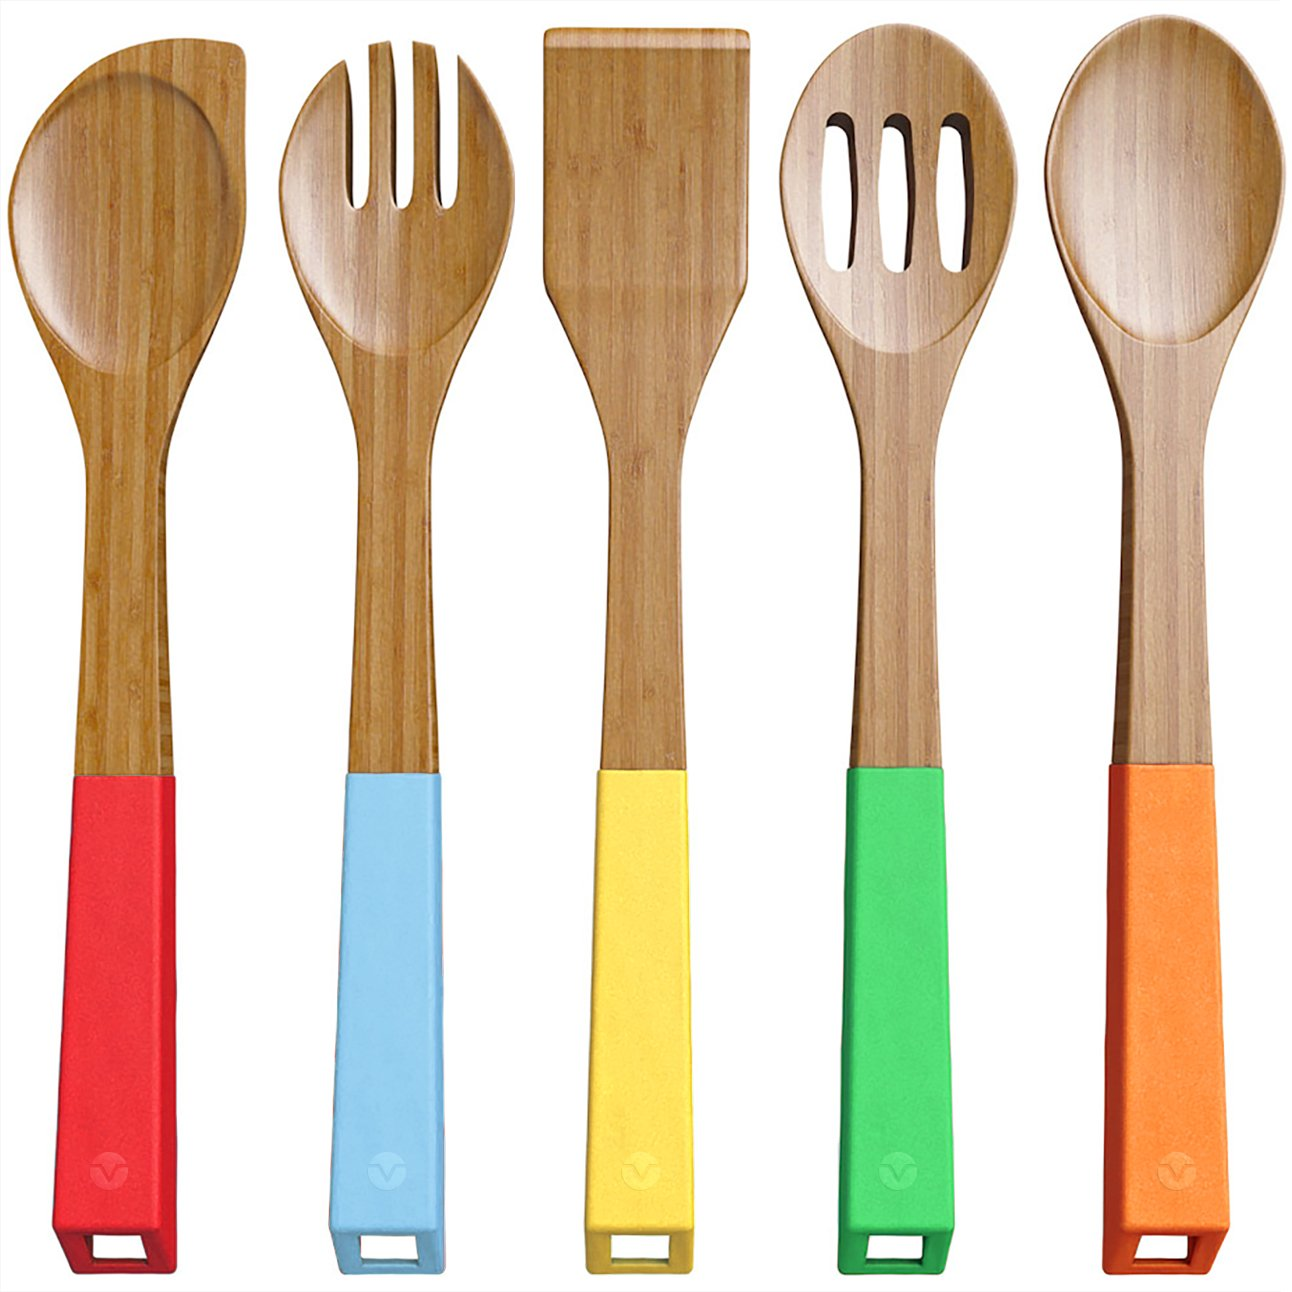 Amazon.com: Vremi 5 Piece Bamboo Spoons Cooking Utensils - Wooden ...